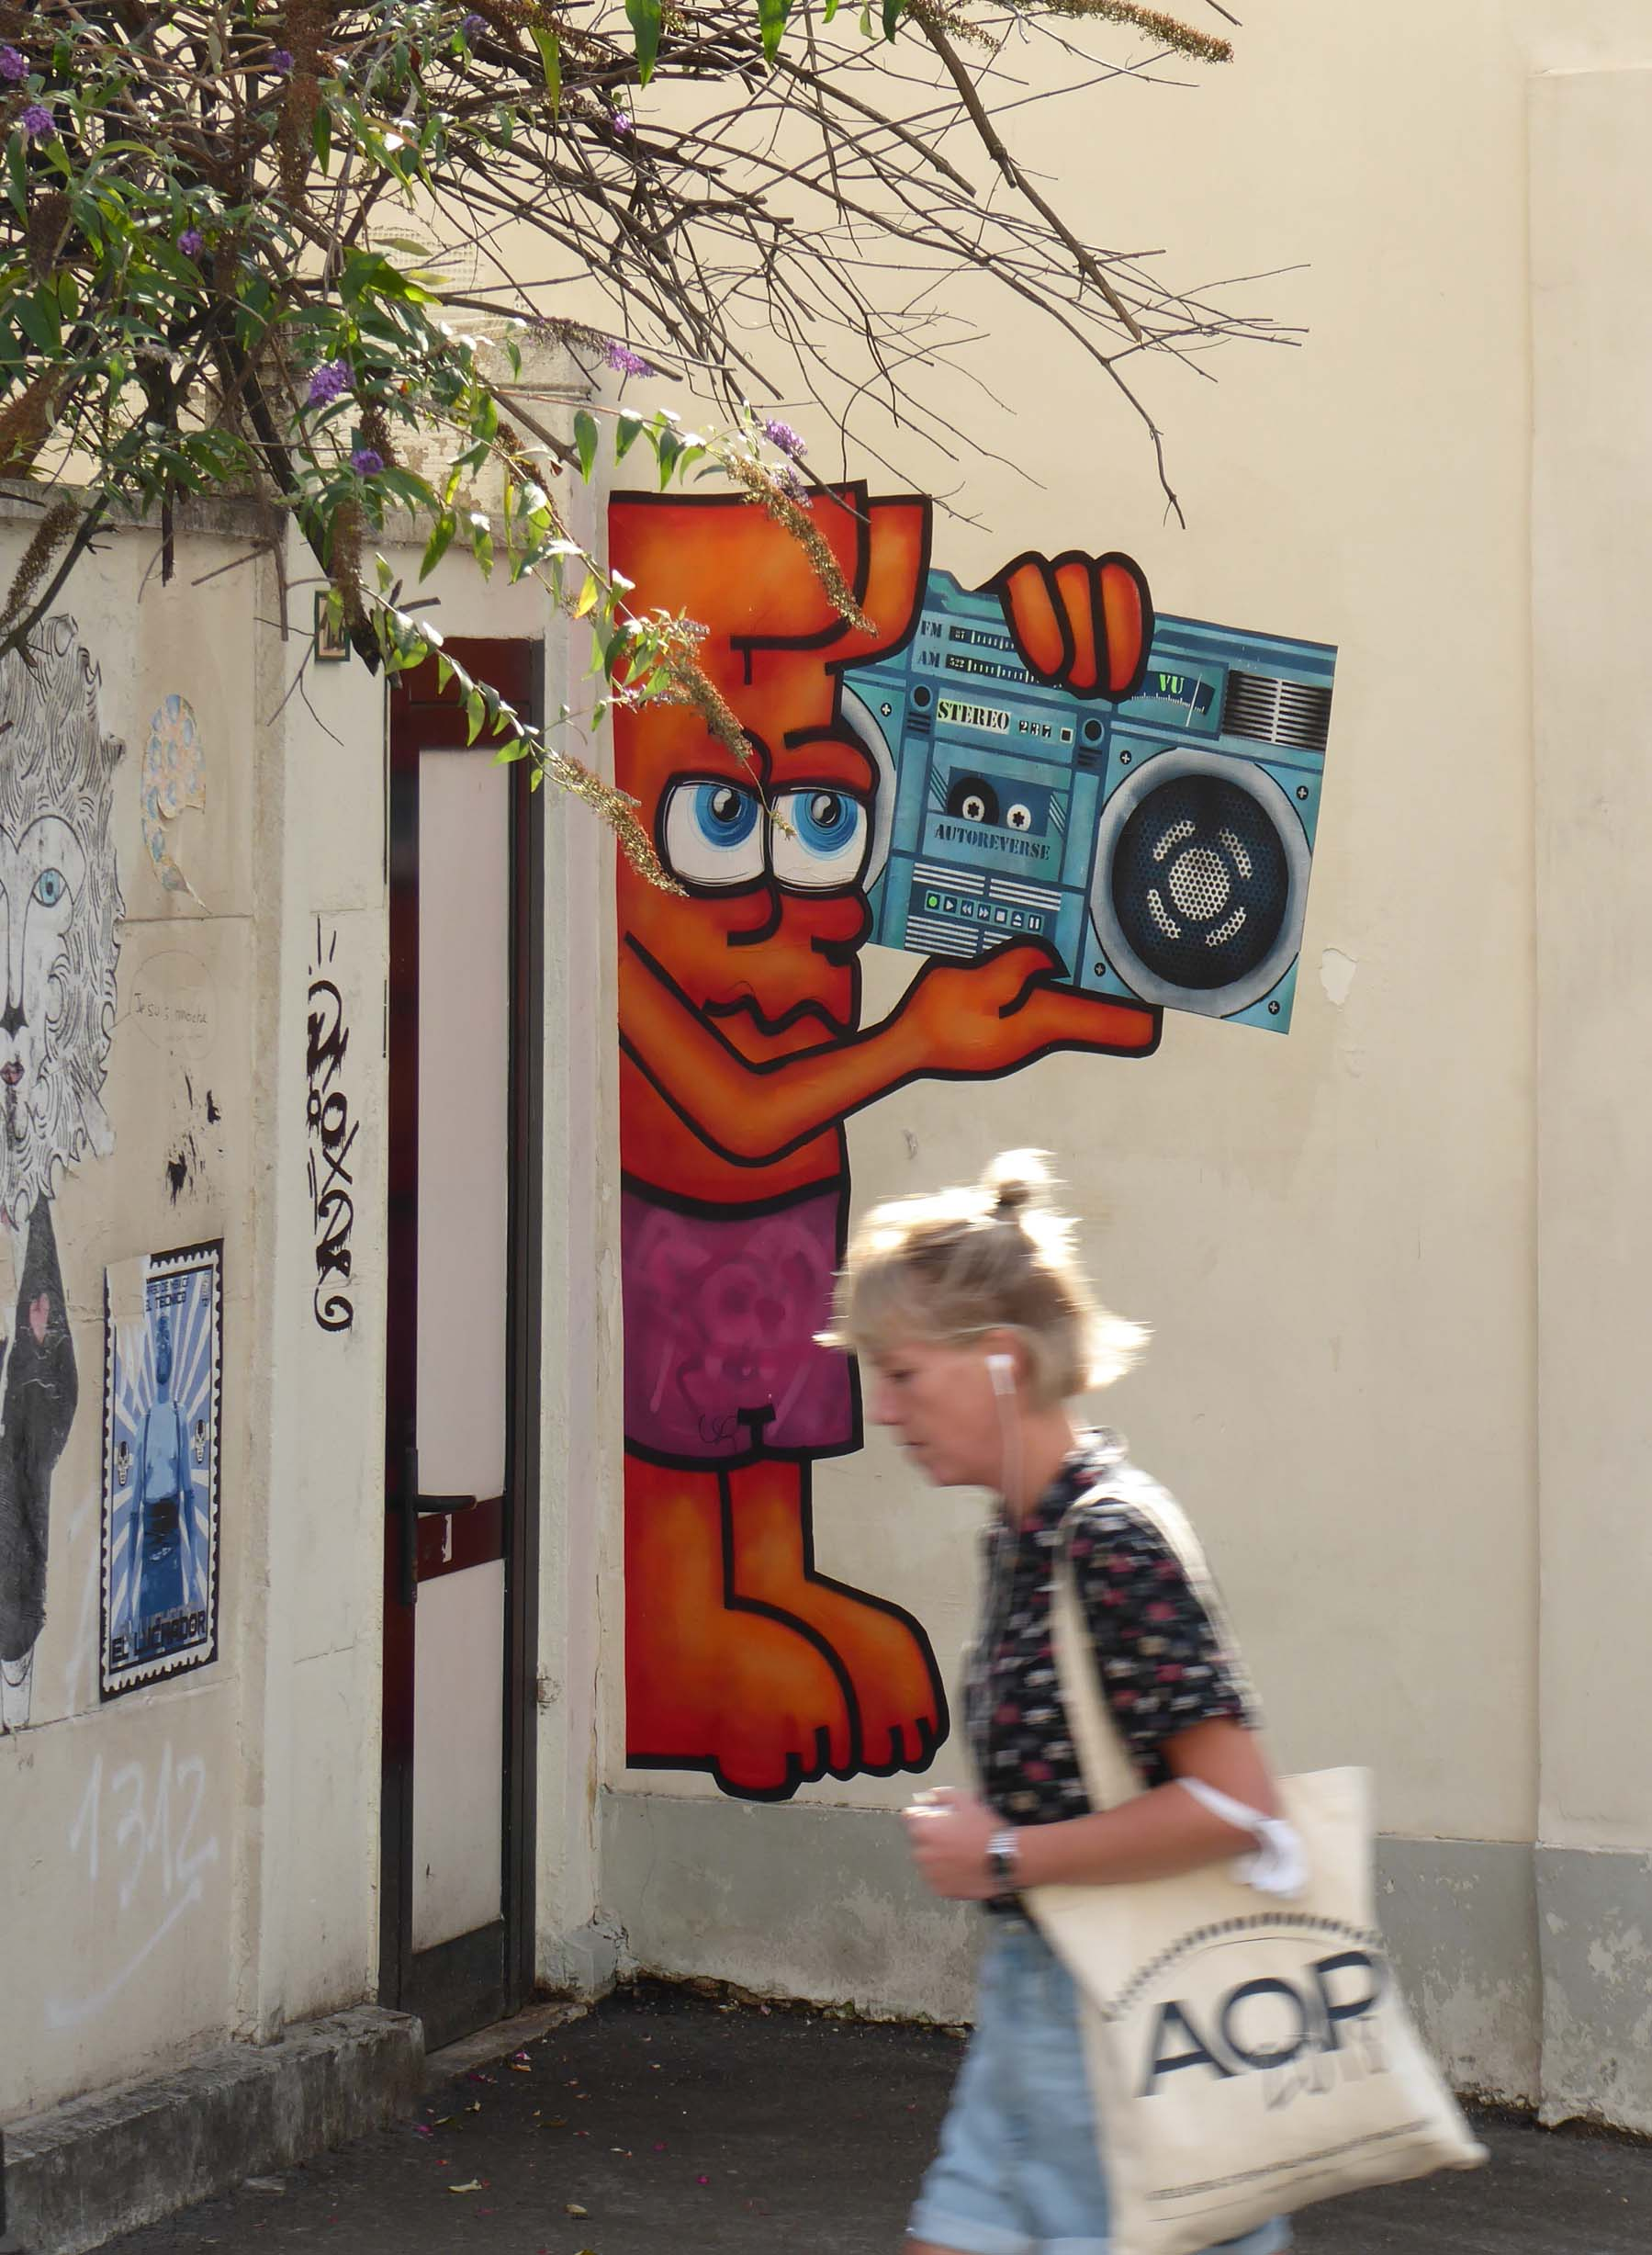 Lady passing a small mural